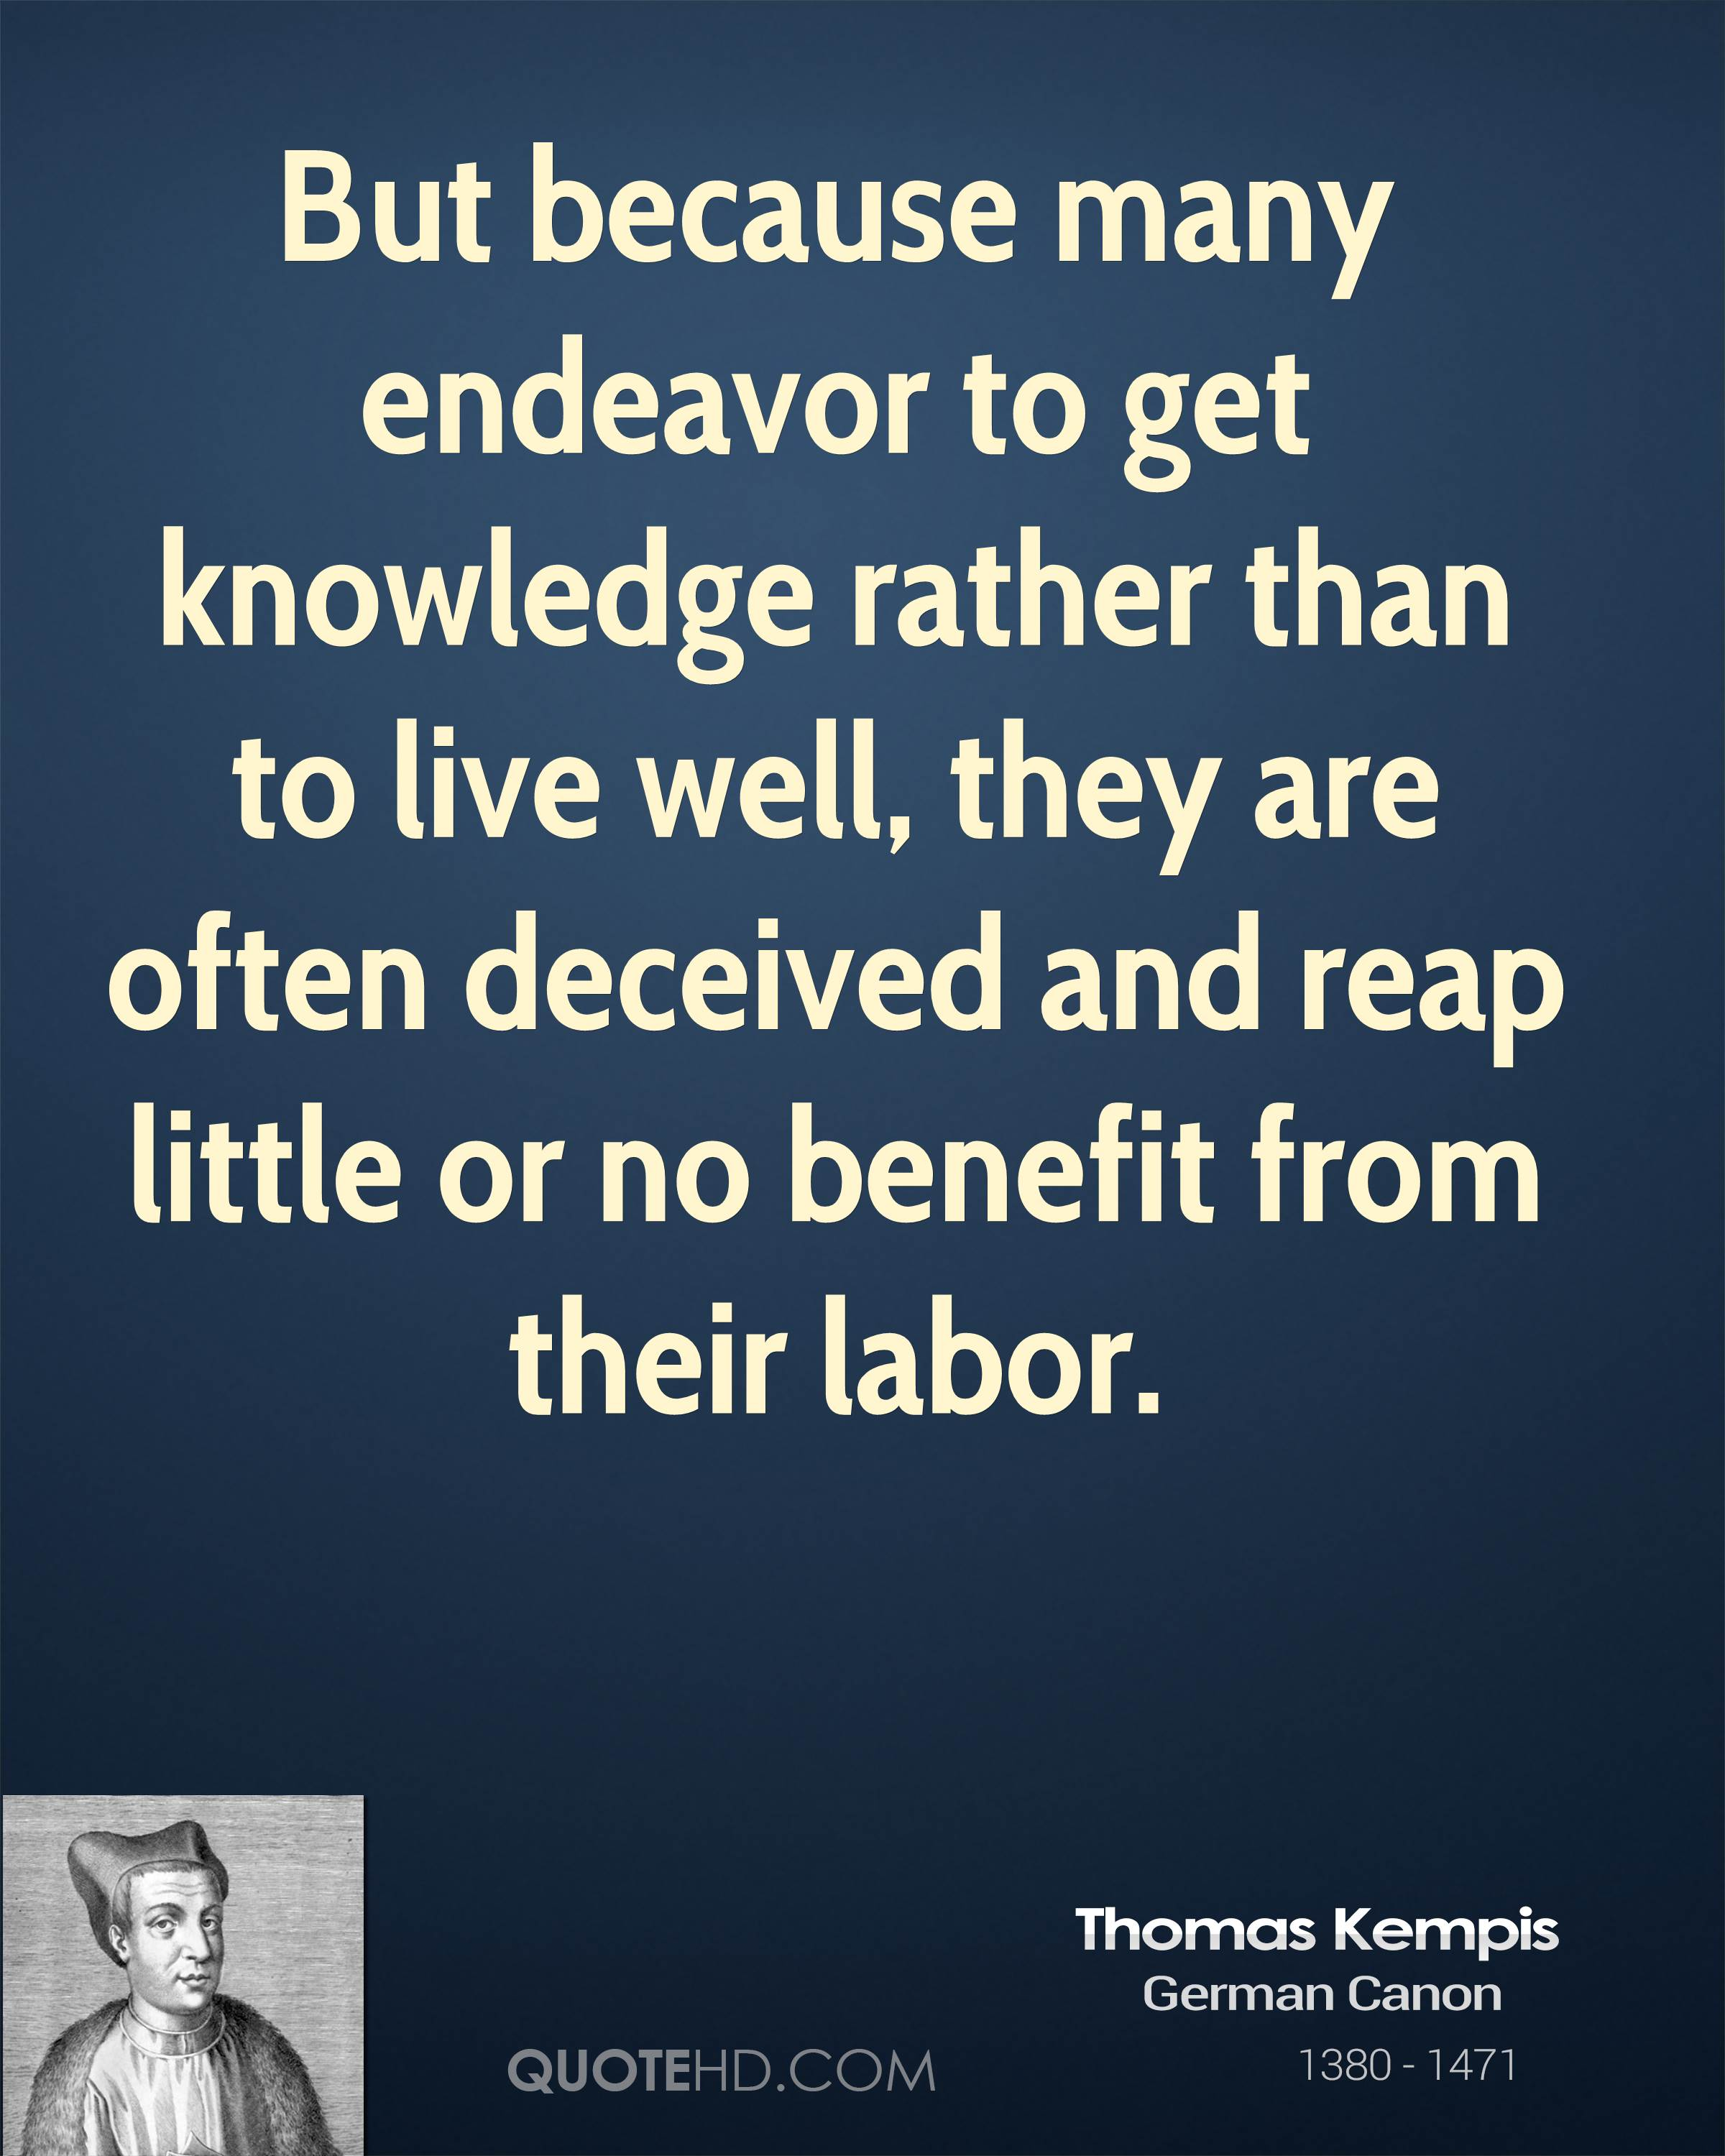 But because many endeavor to get knowledge rather than to live well, they are often deceived and reap little or no benefit from their labor.